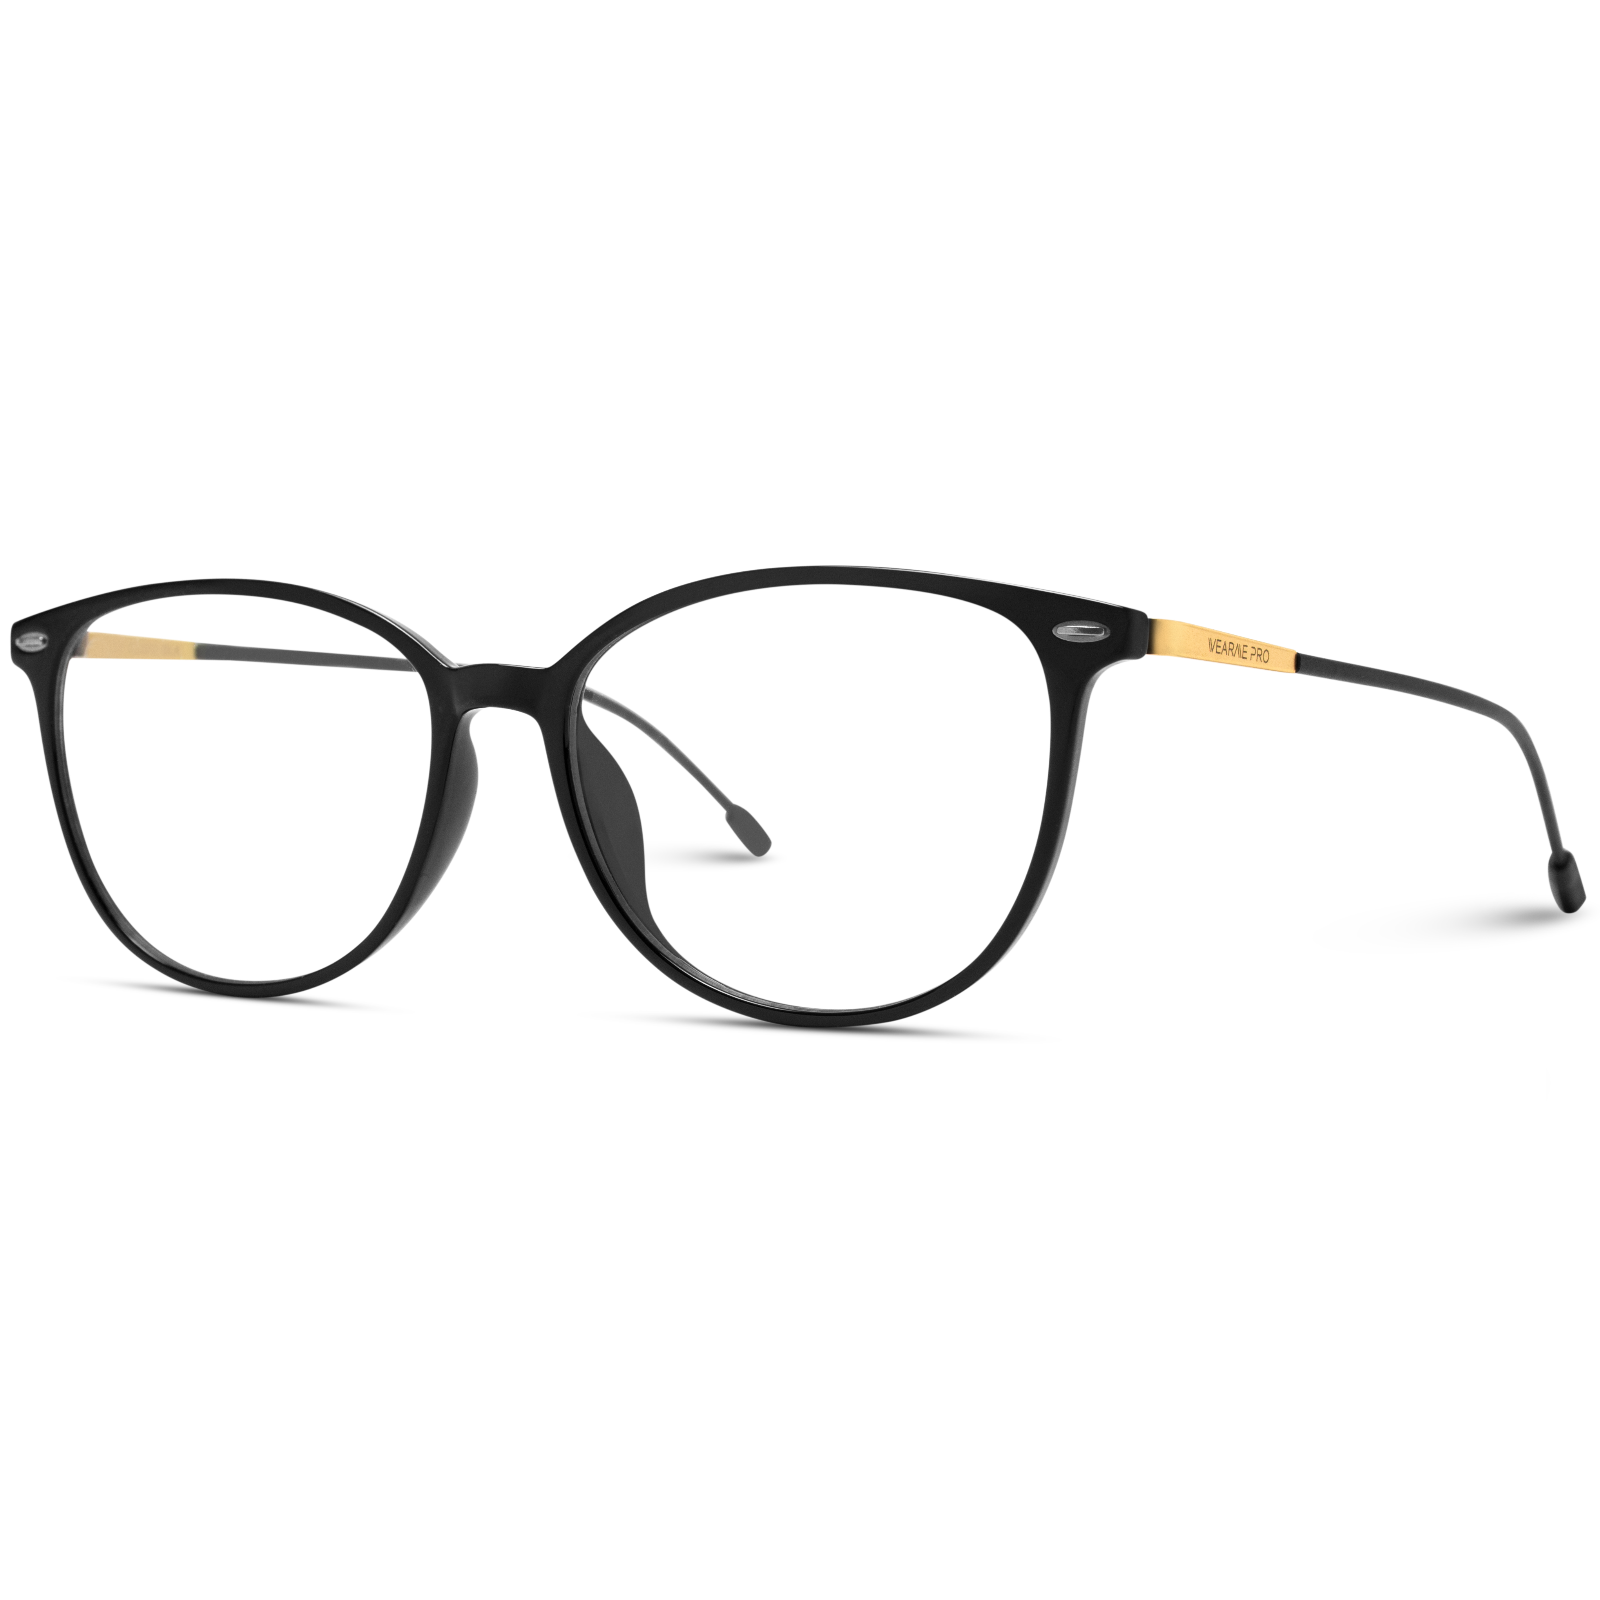 metal accent rectangular eyewear